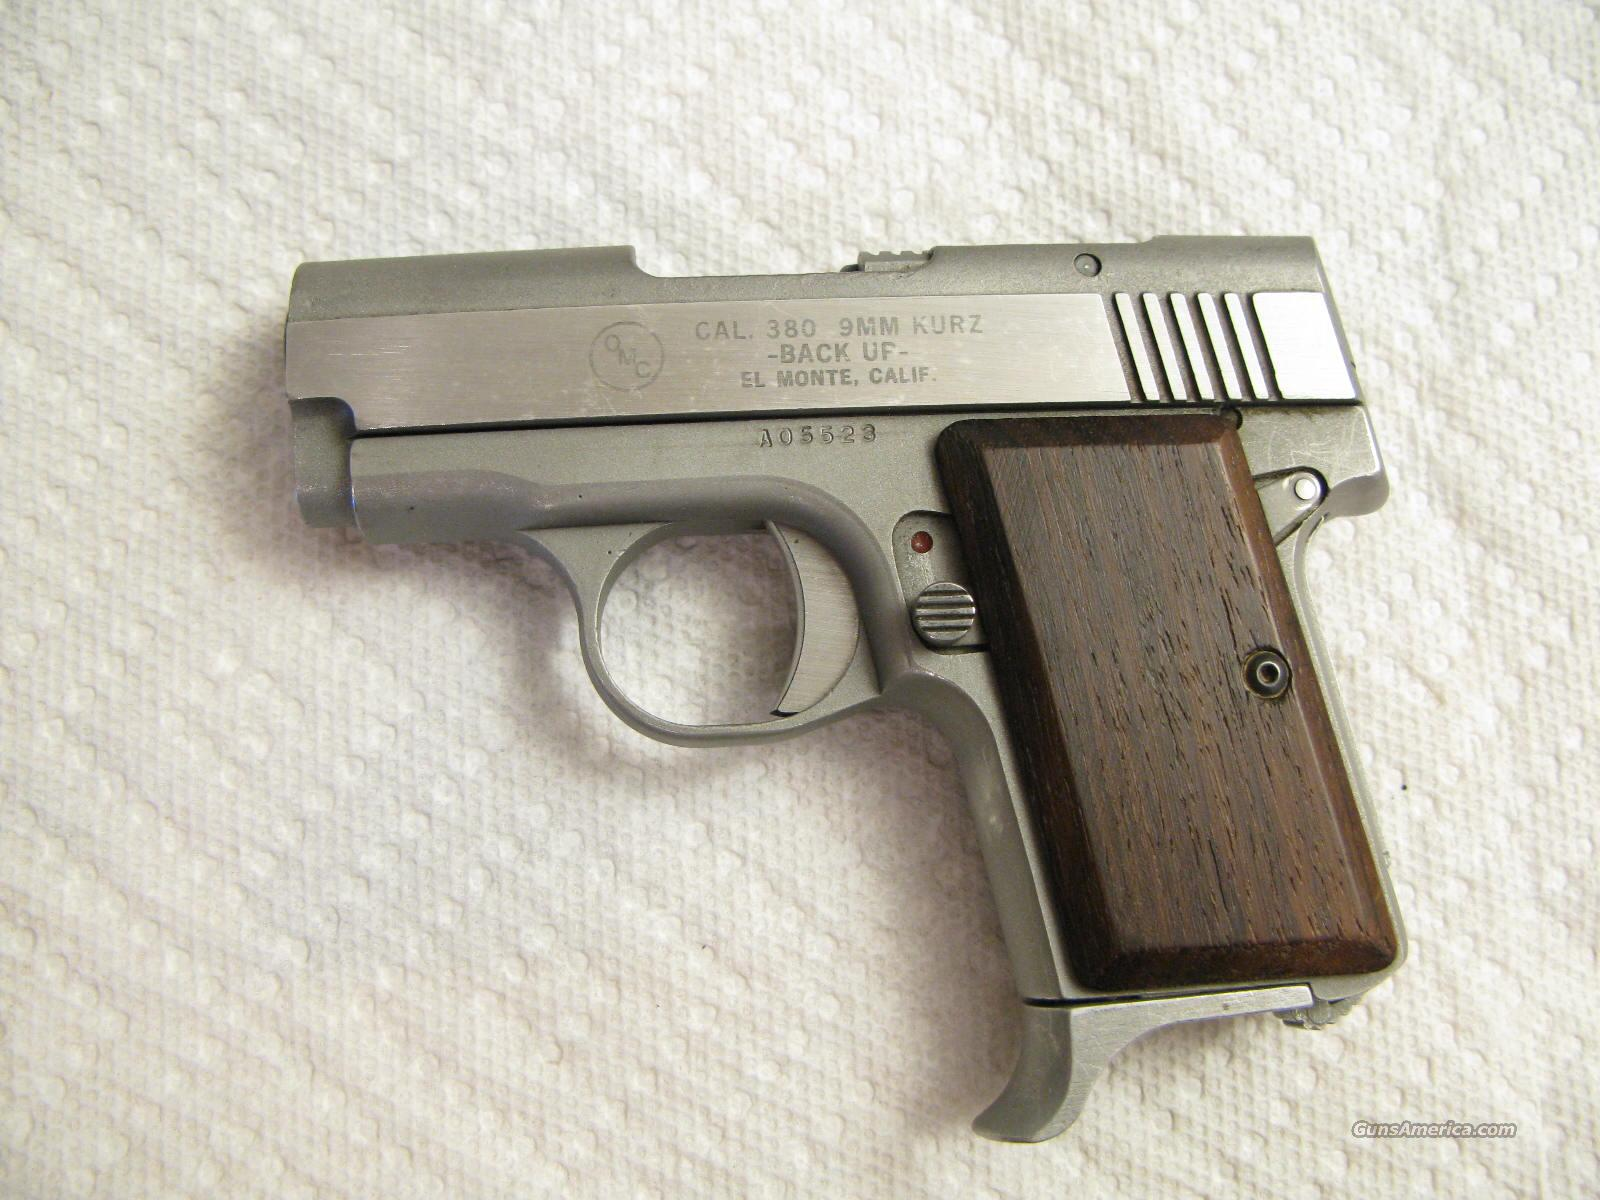 OMC Back Up .380 ACP Semi-Auto Stainless Steel Early AMT Variation   Guns > Pistols > AMT Pistols > Other